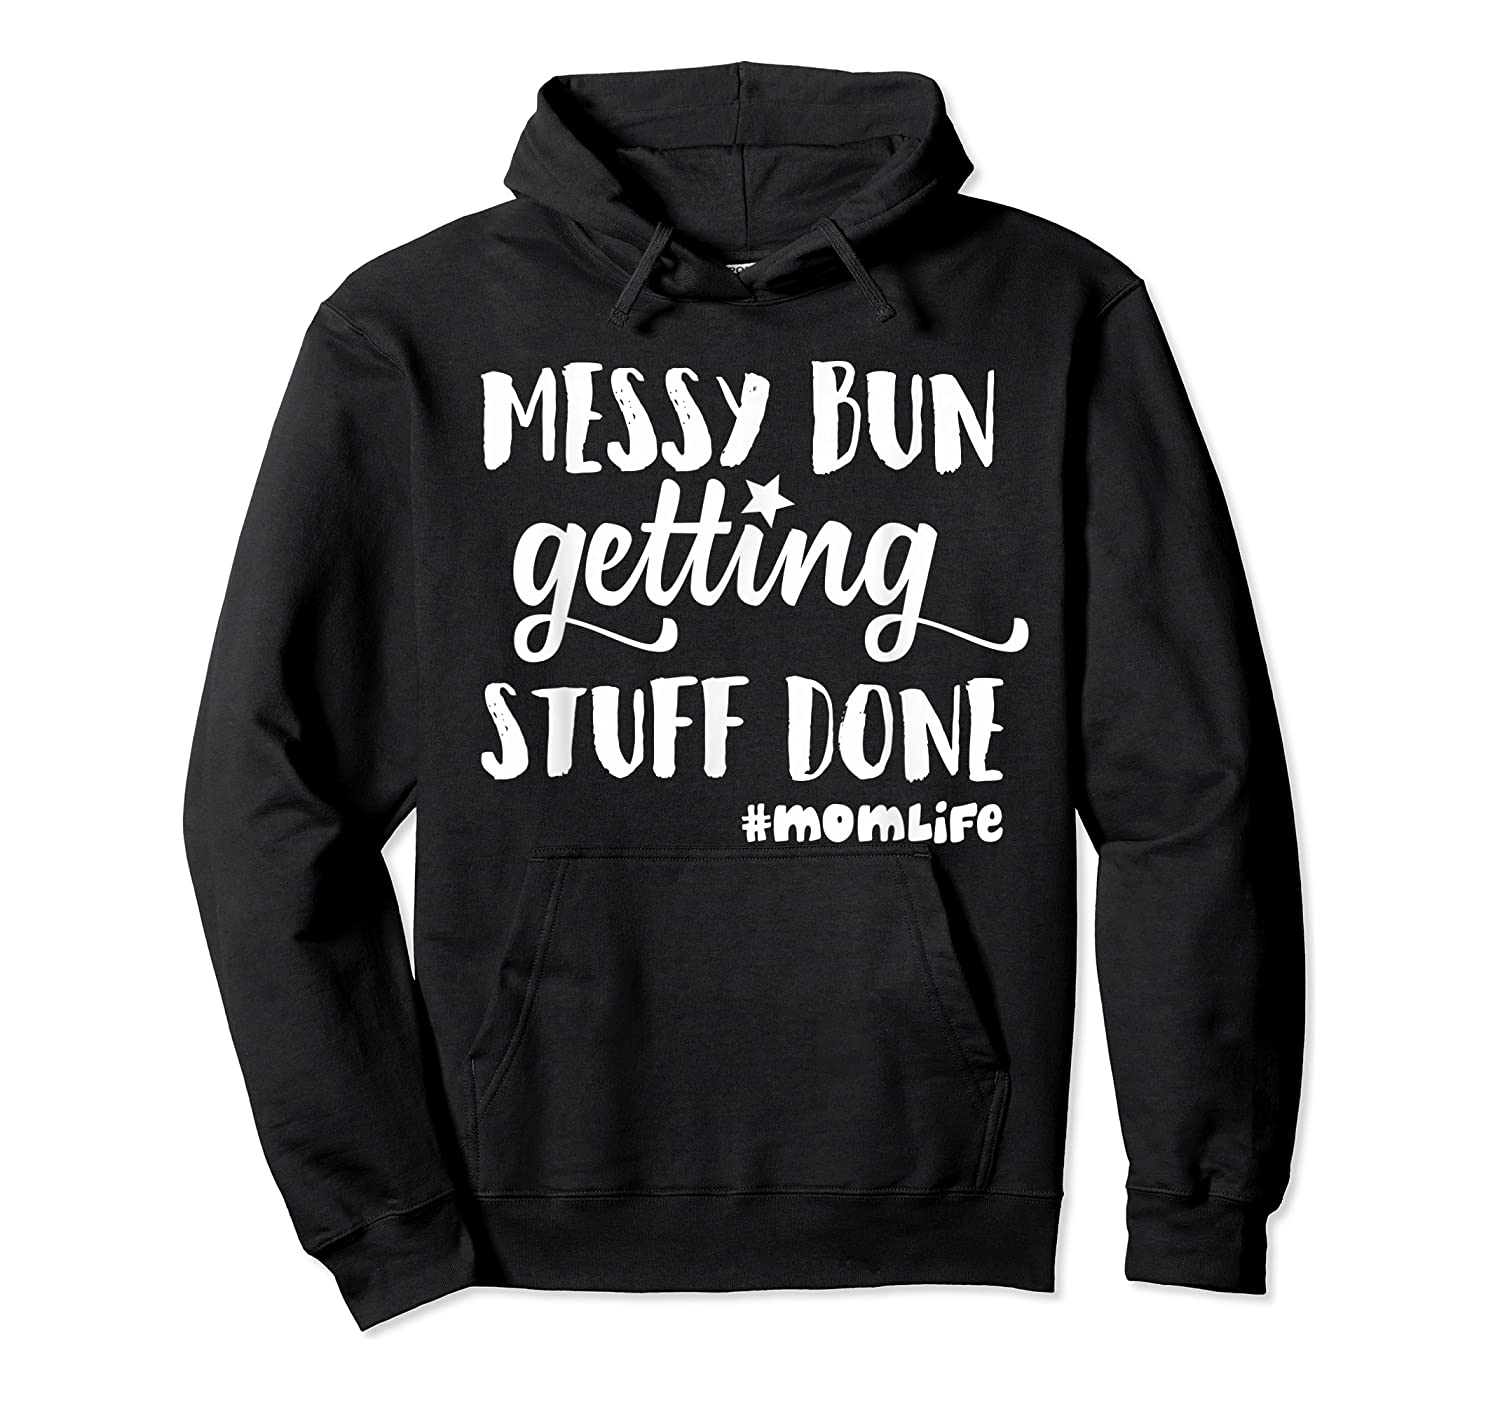 Messy Bun Getting Stuff Done Mom Life Shirts Unisex Pullover Hoodie